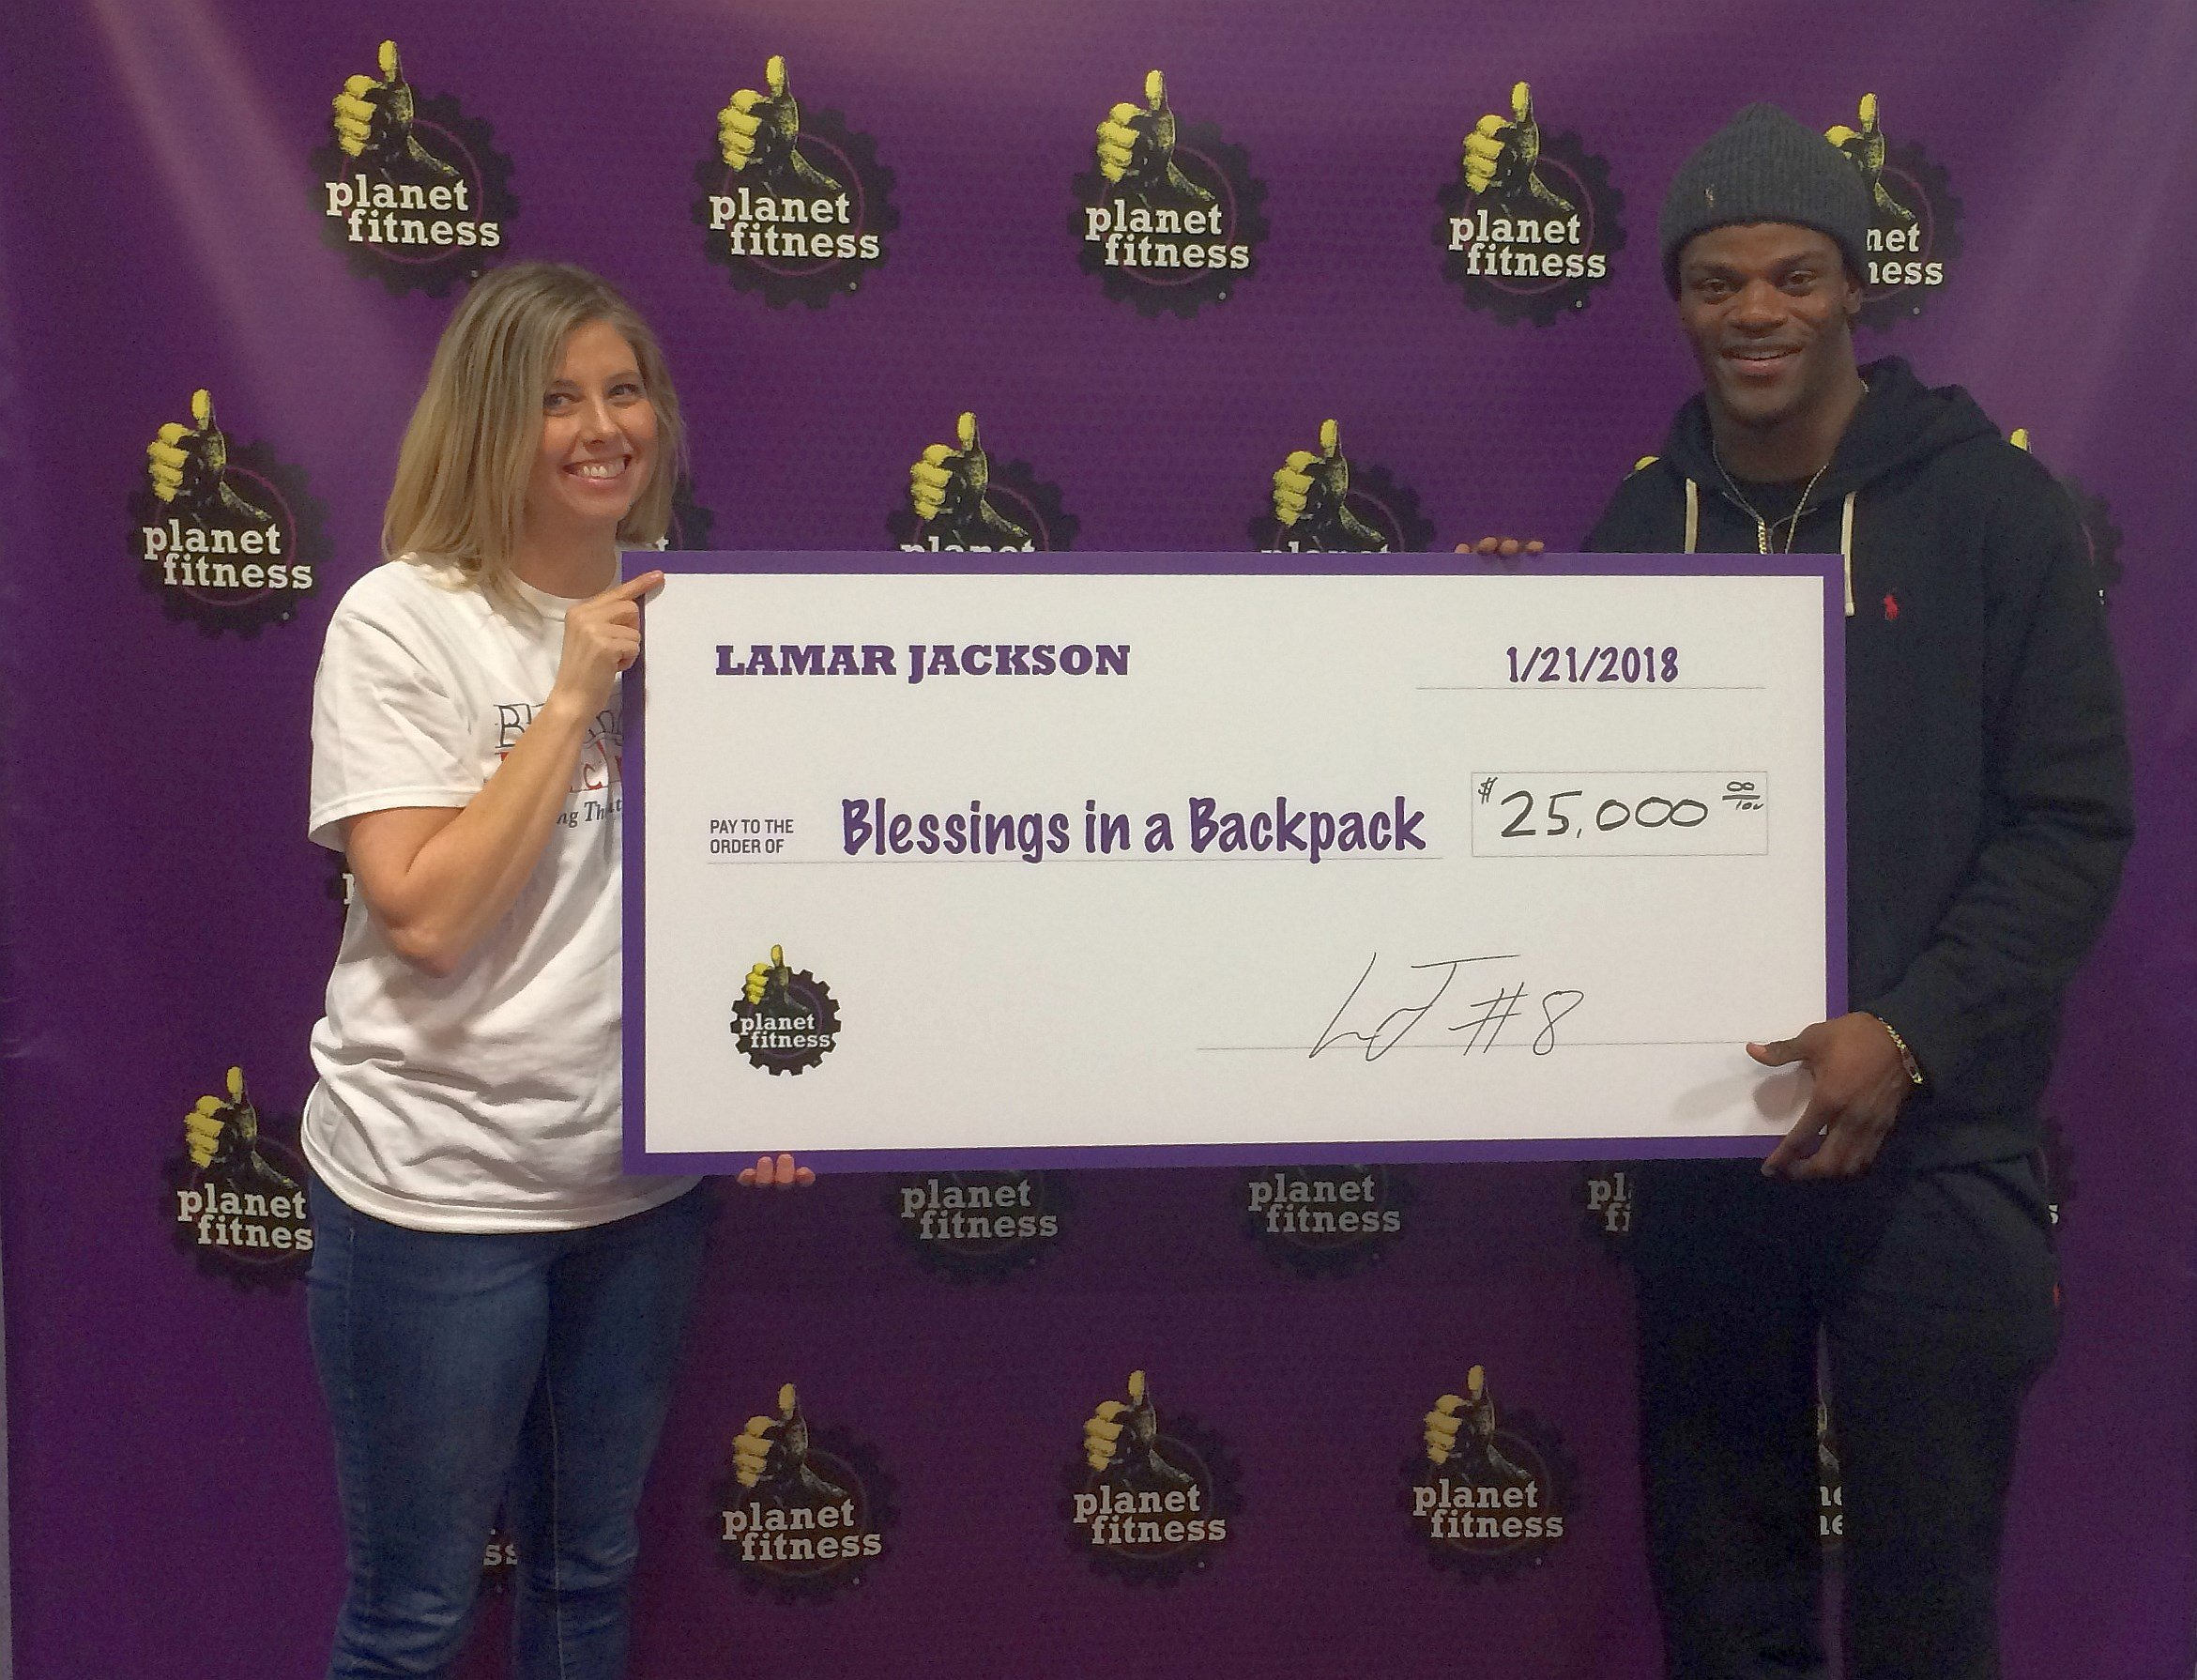 Blessings in a Backpack Chief Marketing Officer Nikki Grizzle receives a $25,000 donation check from Lamar Jackson. The $25,000 was raised through autograph sessions at four Louisville-area Planet Fitness clubs.